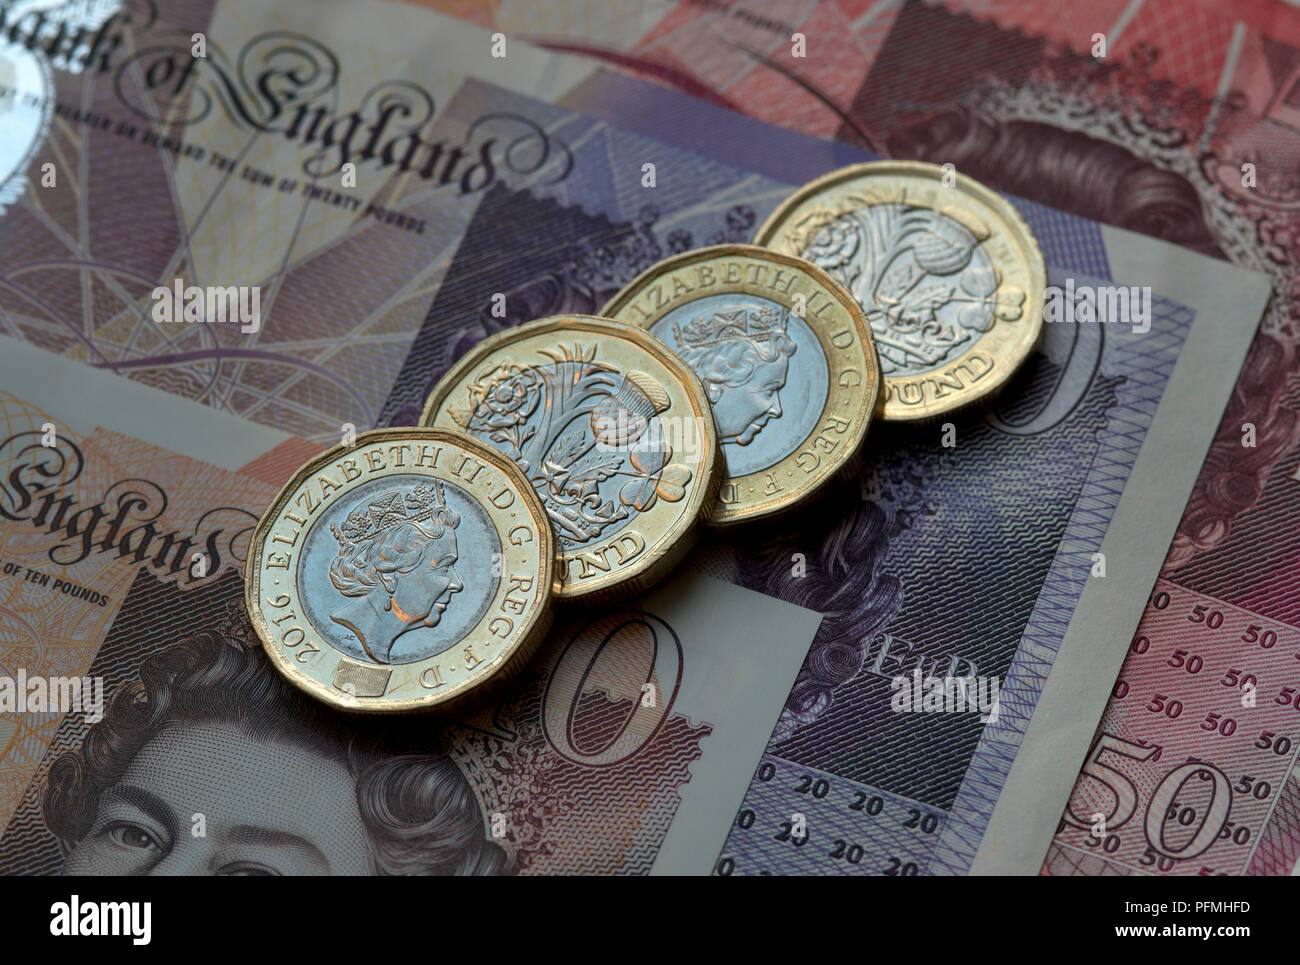 New British (GBP) pound coins resting on £50, £20 and £10 pound notes. - Stock Image